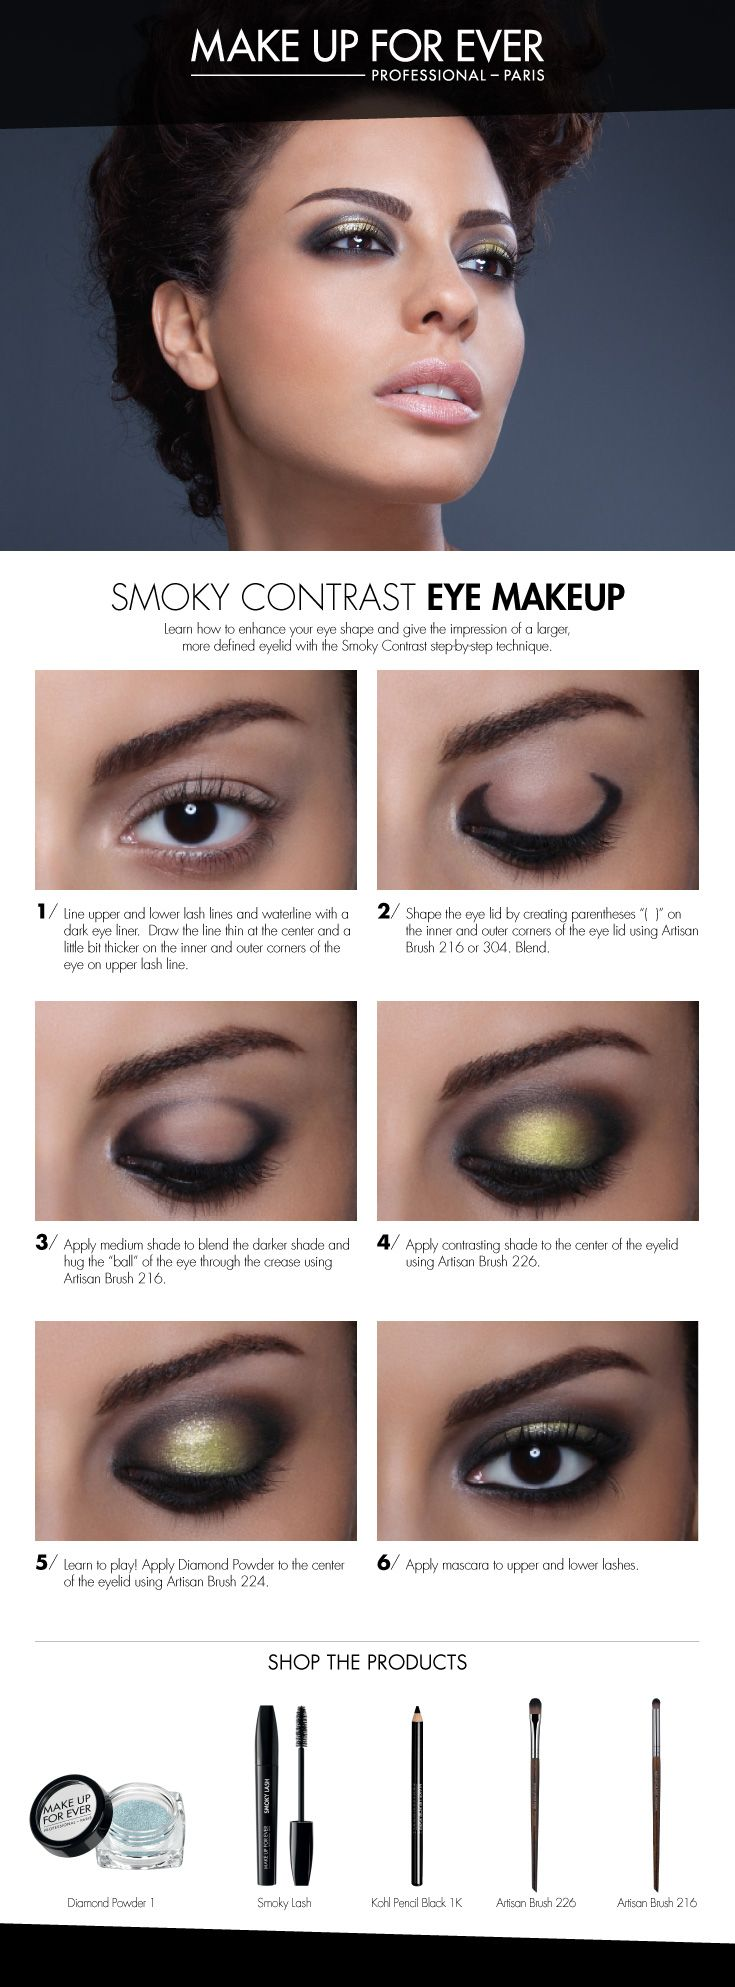 Smoky Contrast Eye Makeup - use this technique to give the illusion of a larger, more round and defined eye. #HowTo courtesy of #Makeupforever #Sephora #makeuptutorial #smokyeye